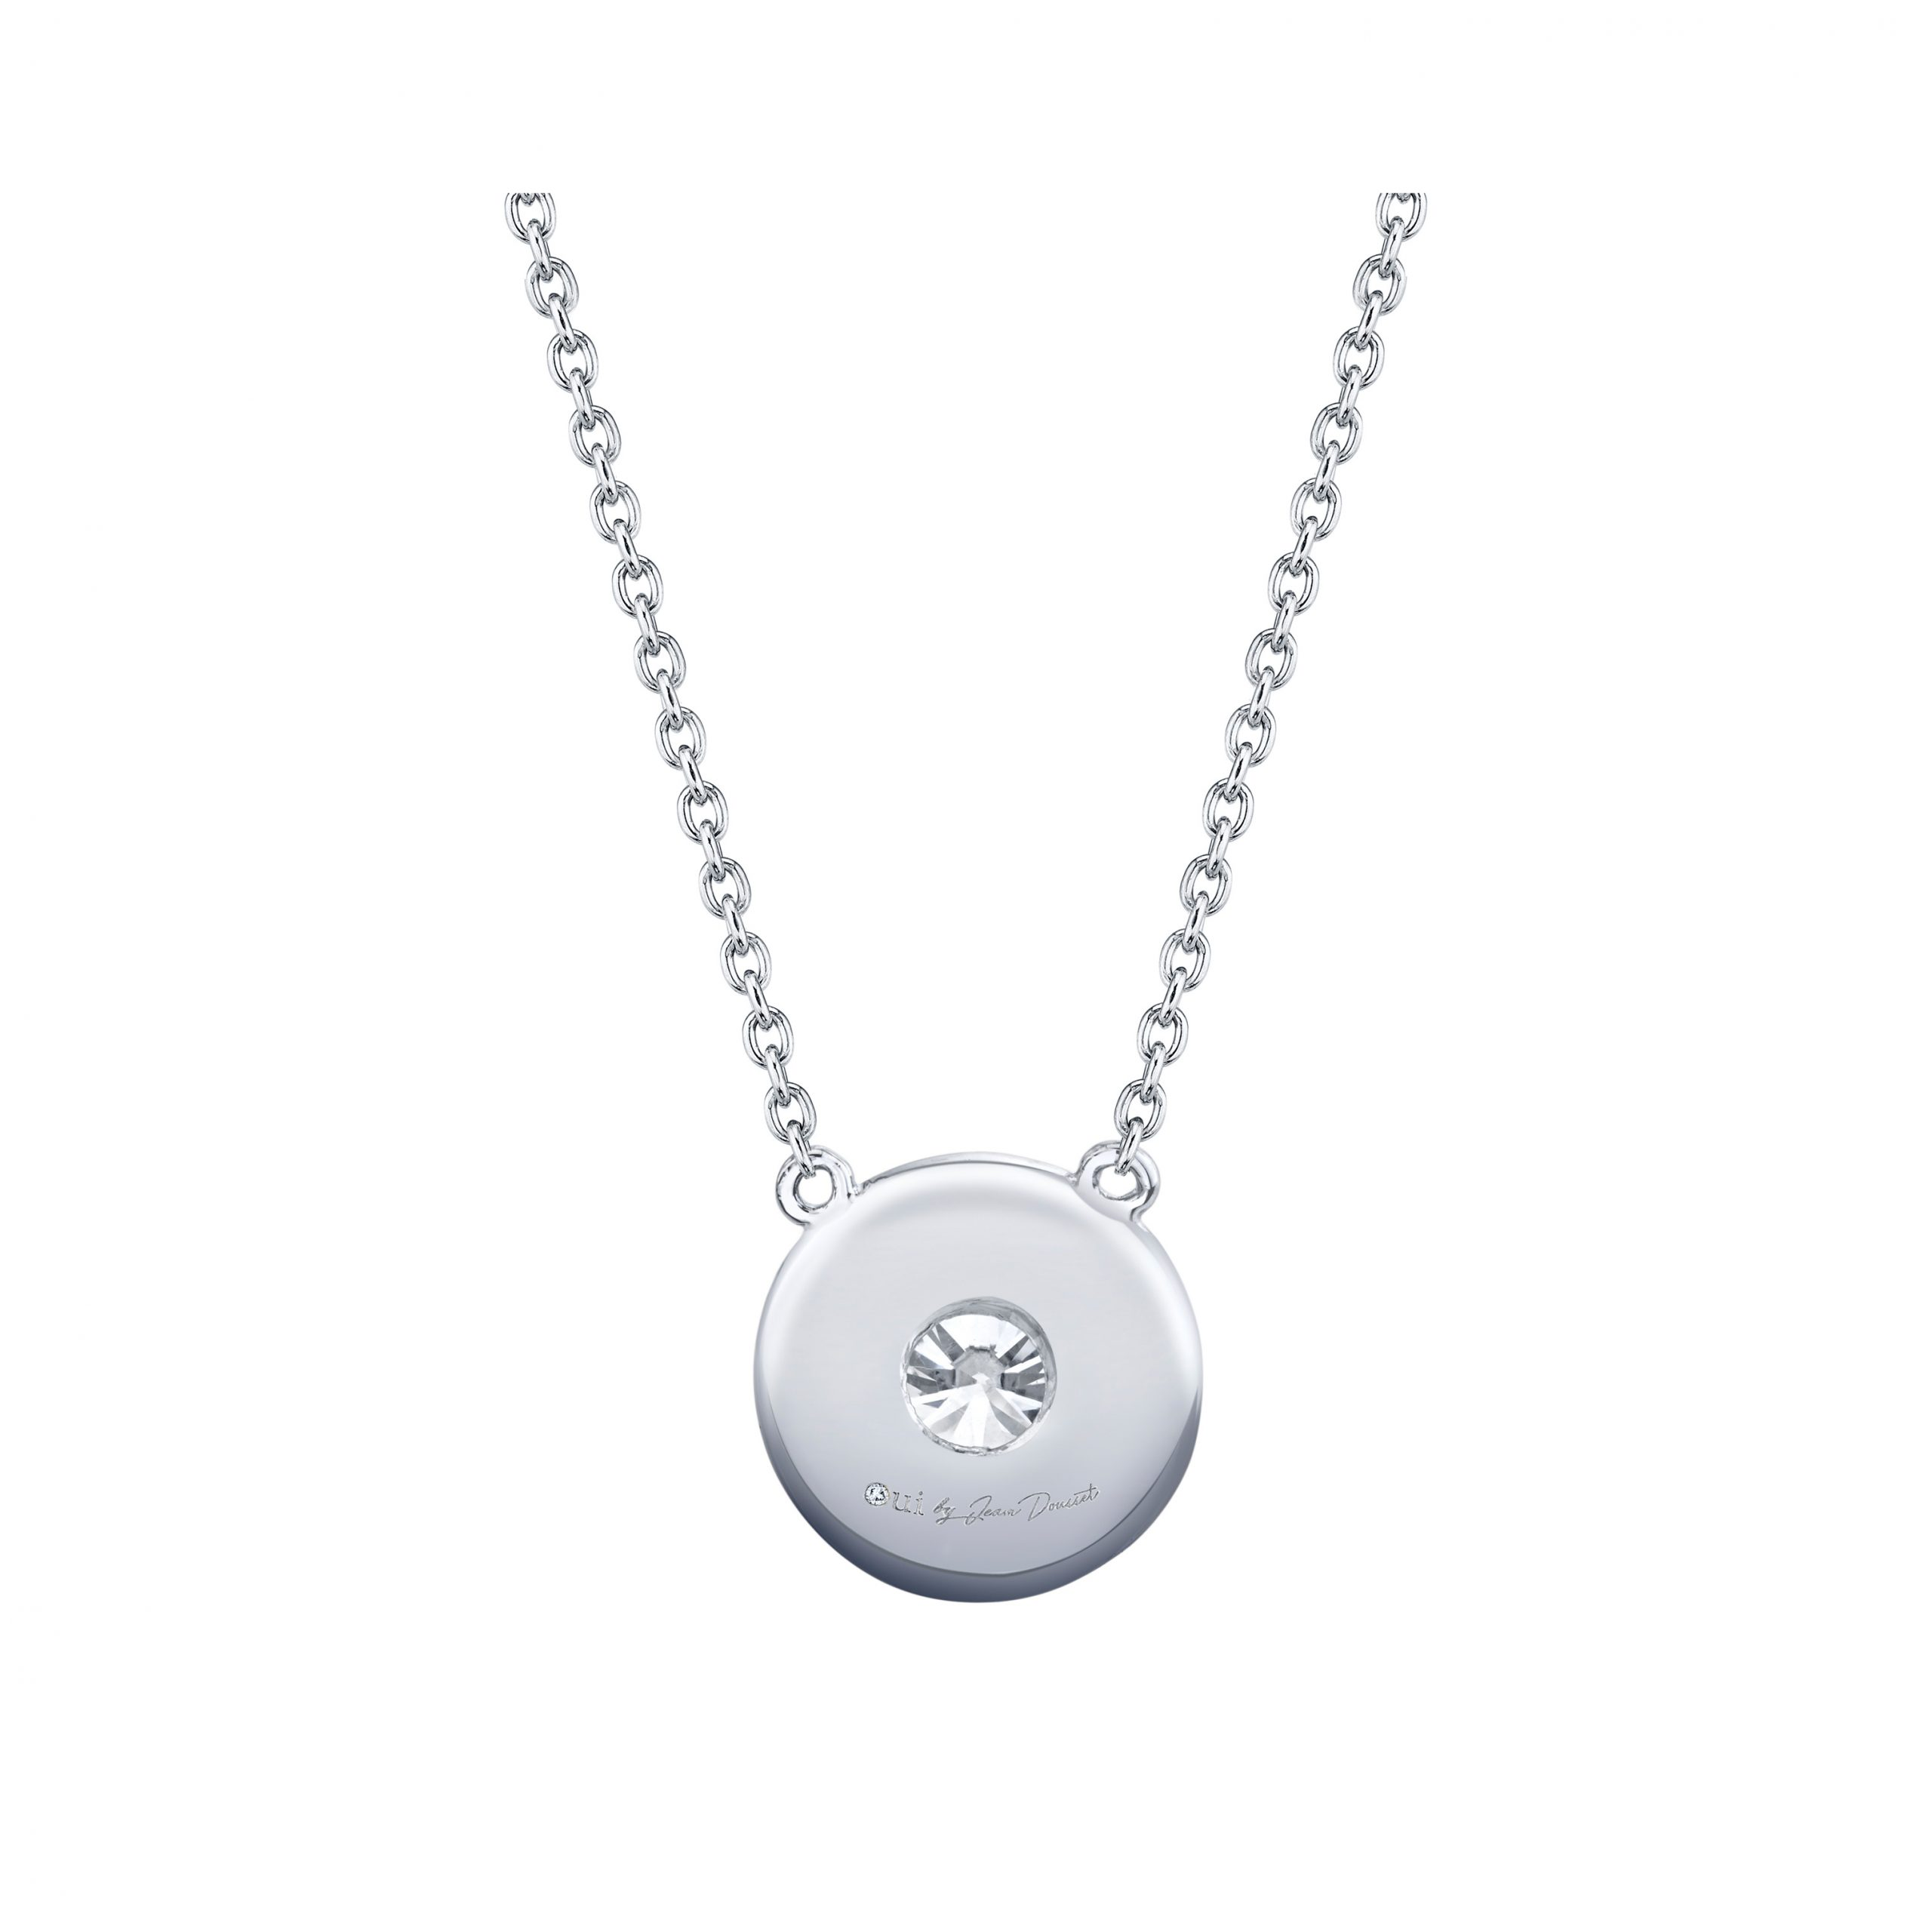 Lucile Round Brilliant Seamless Solitaire® Diamond Pendant 18k White Gold Back View by Oui by Jean Dousset